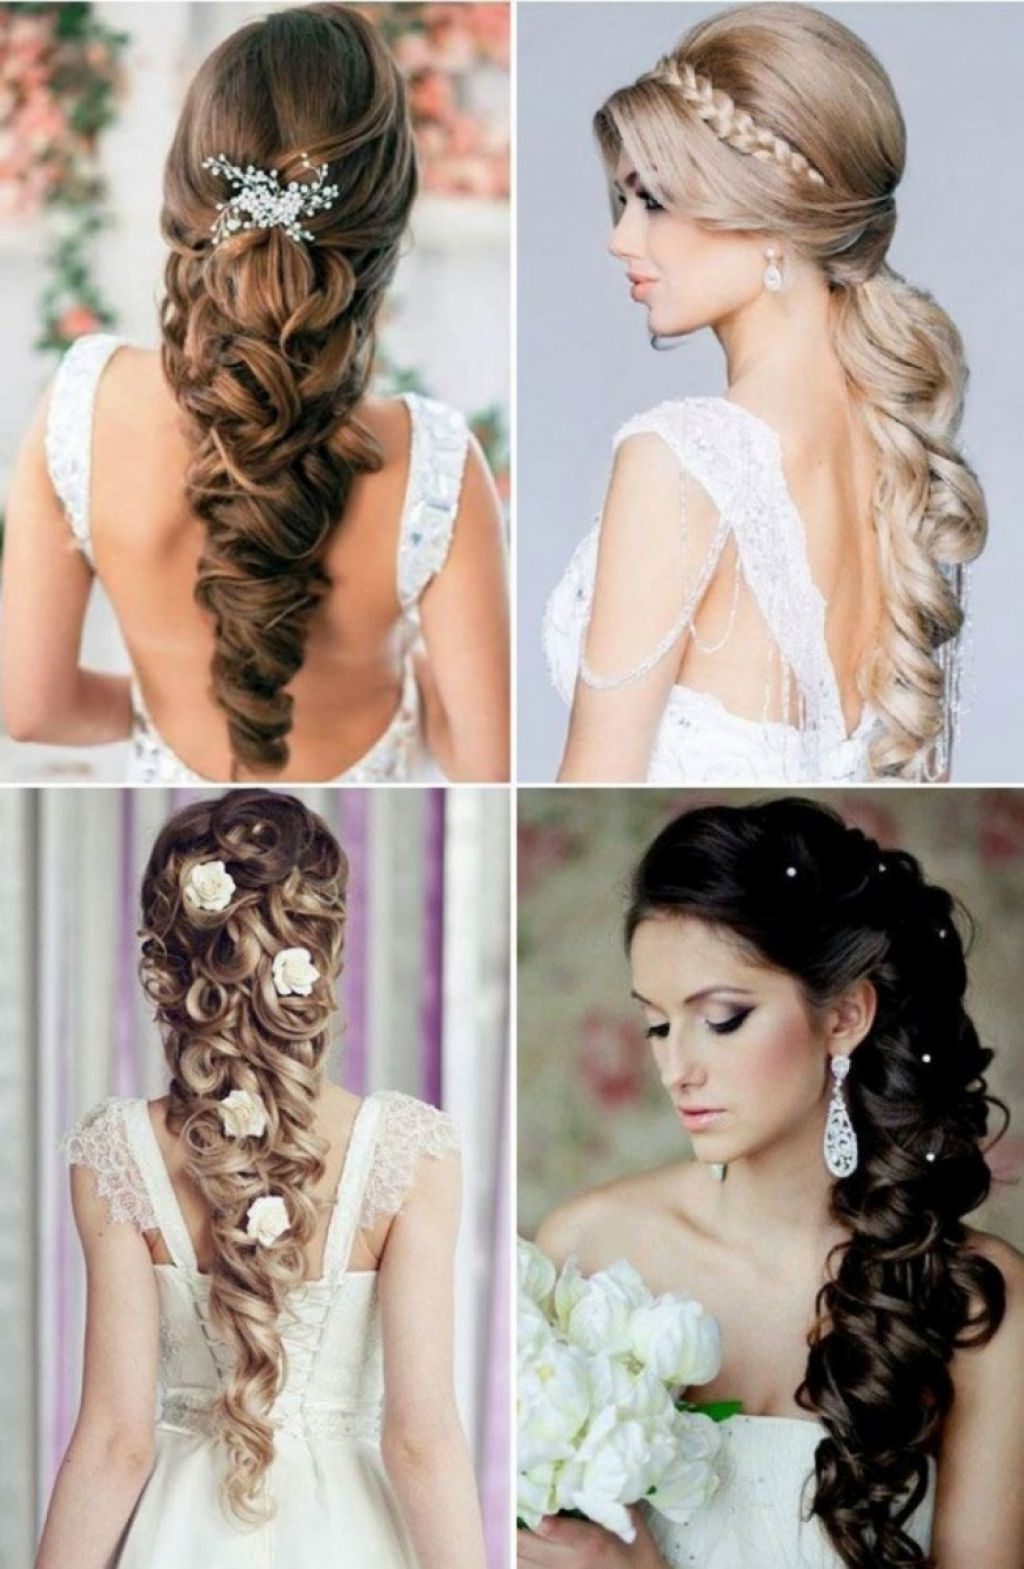 Current Hairstyles For Long Hair For A Wedding Party Intended For √ 24+ Fresh Hairstyles For Wedding Party: Hairstyles For Long Hair (View 2 of 15)